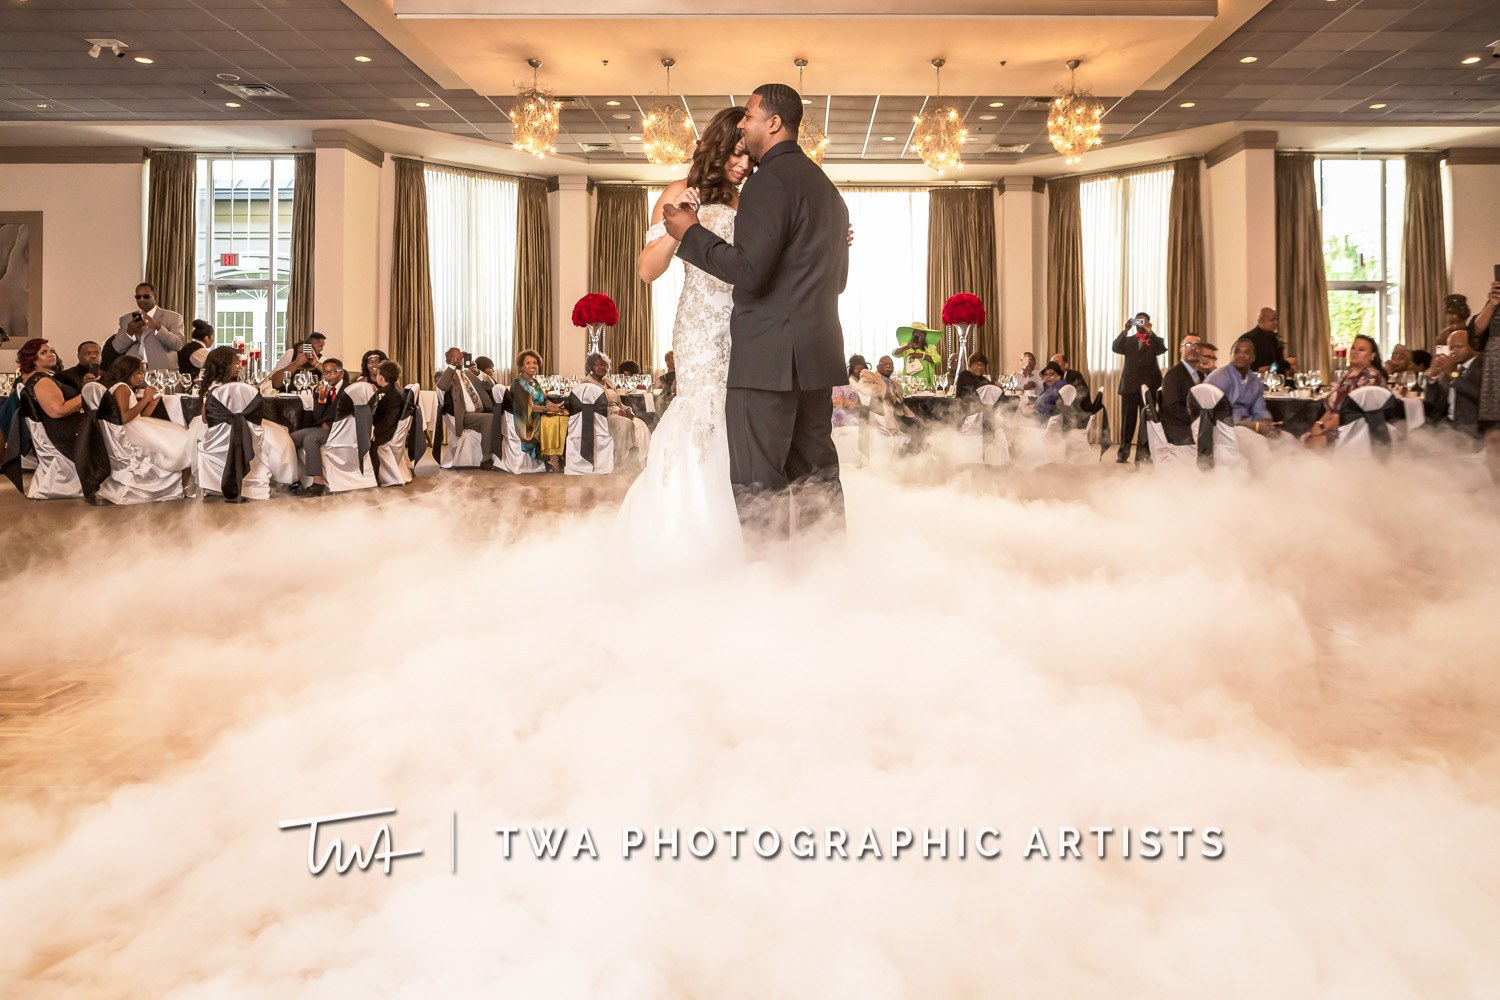 Chicago-Wedding-Photographer-TWA-Photographic-Artists-Belvedere-Banquets_Chambers_Robinson_MiC-0569